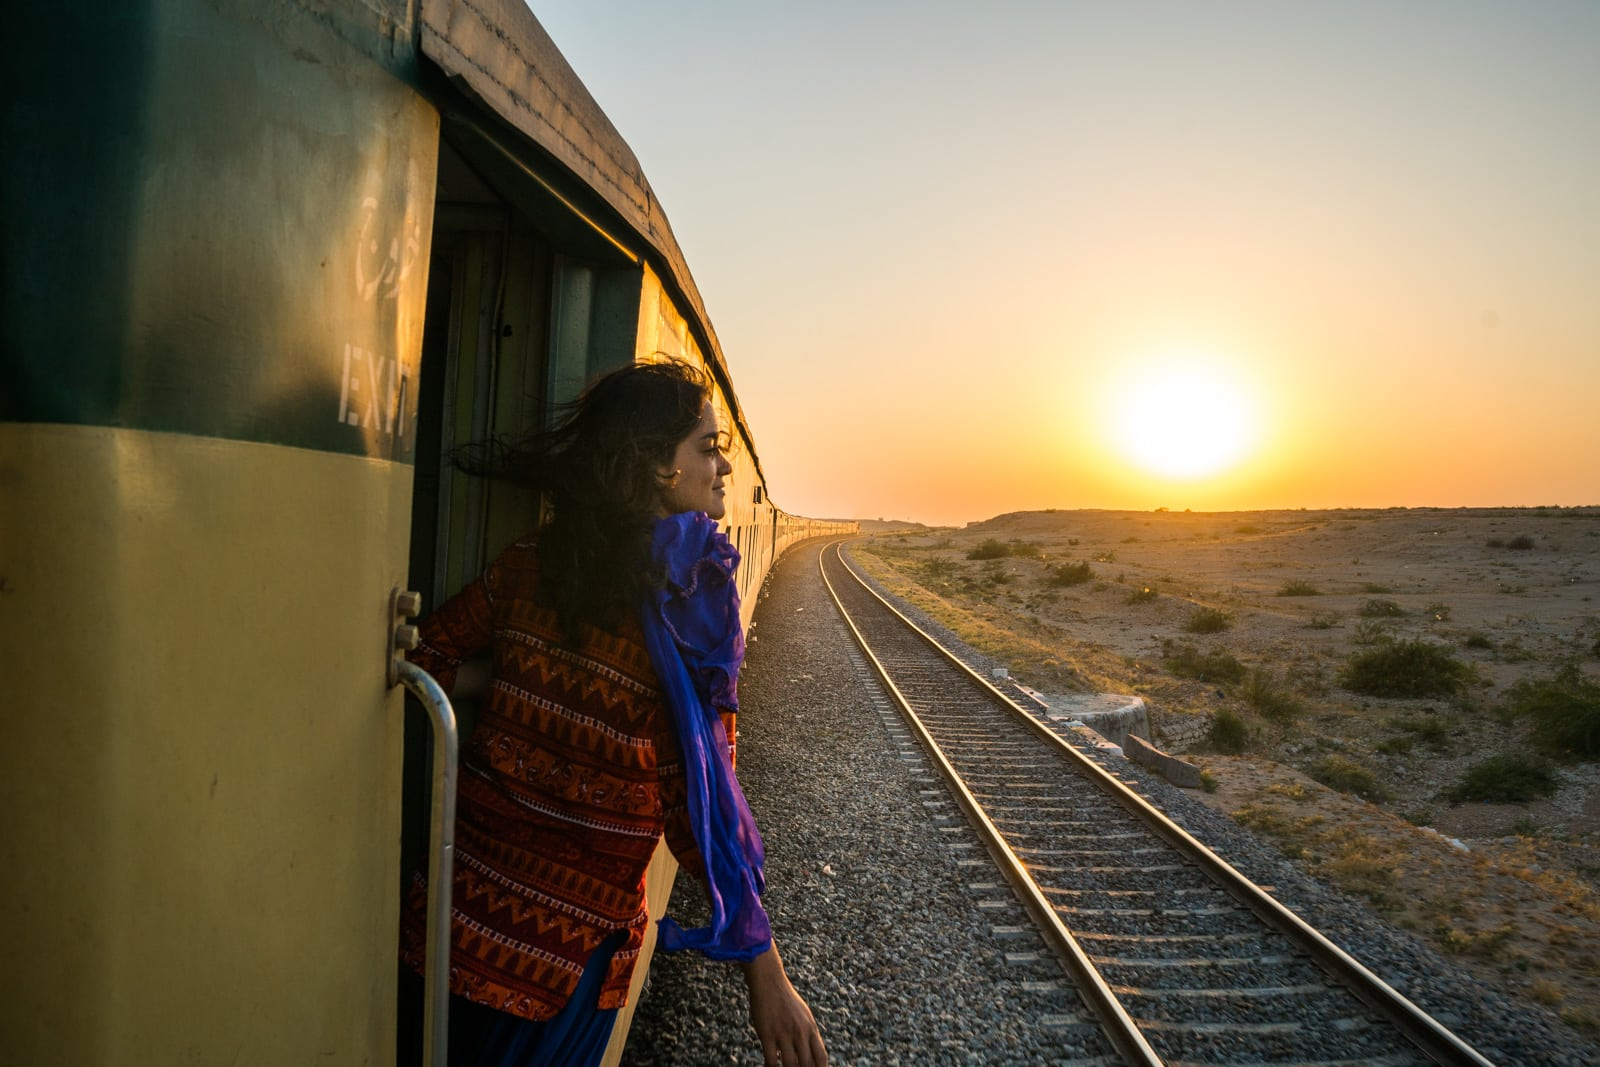 Female traveler riding a train from Lahore to Karachi, Sindh, Pakistan, at sunset